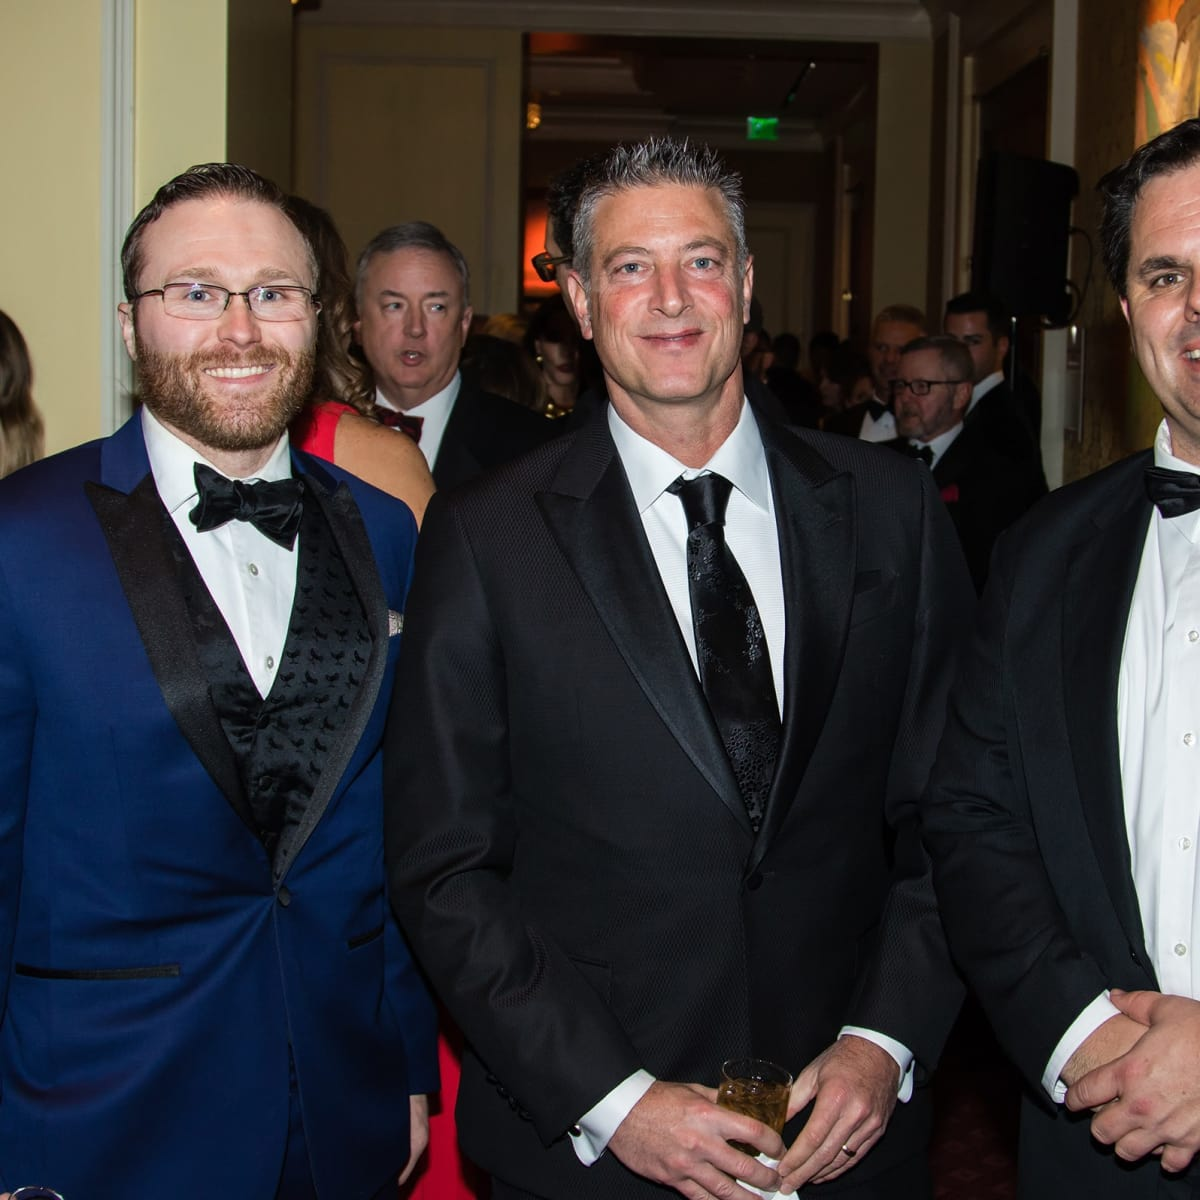 David McAdams, Jeremy Lock, Mike Heaton, Unicef gala 2018